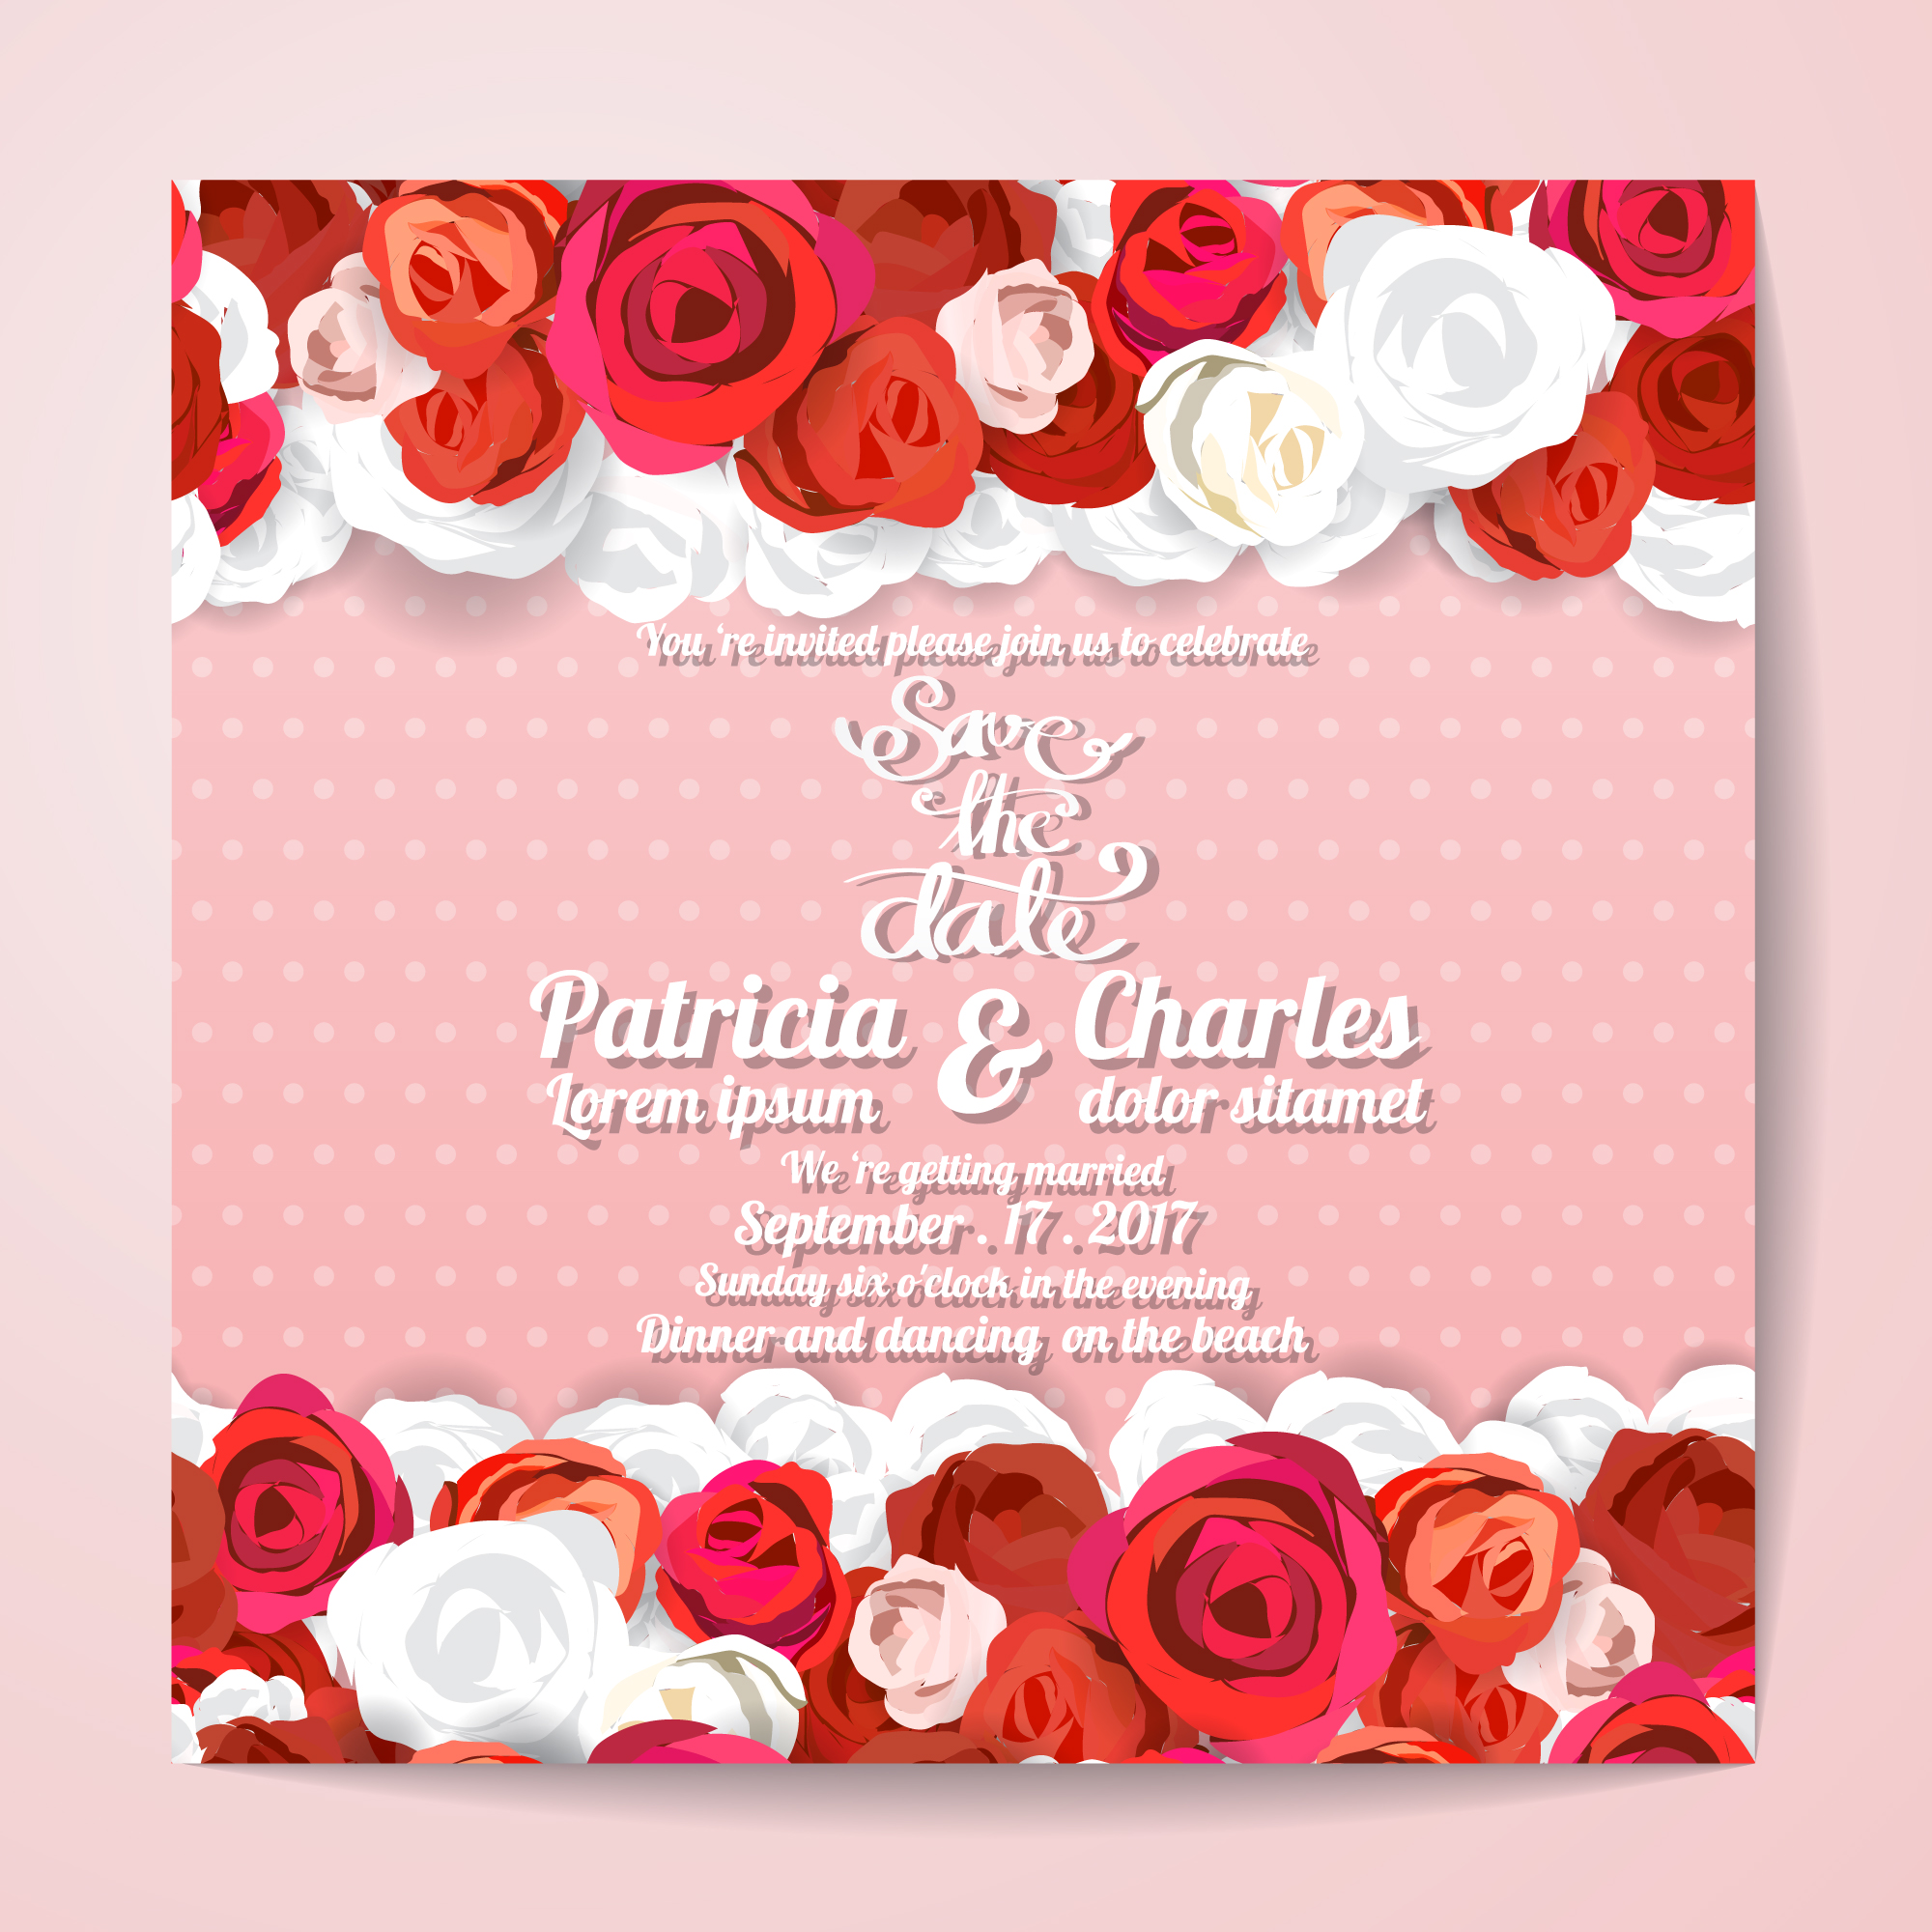 Wedding invitation with red roses design